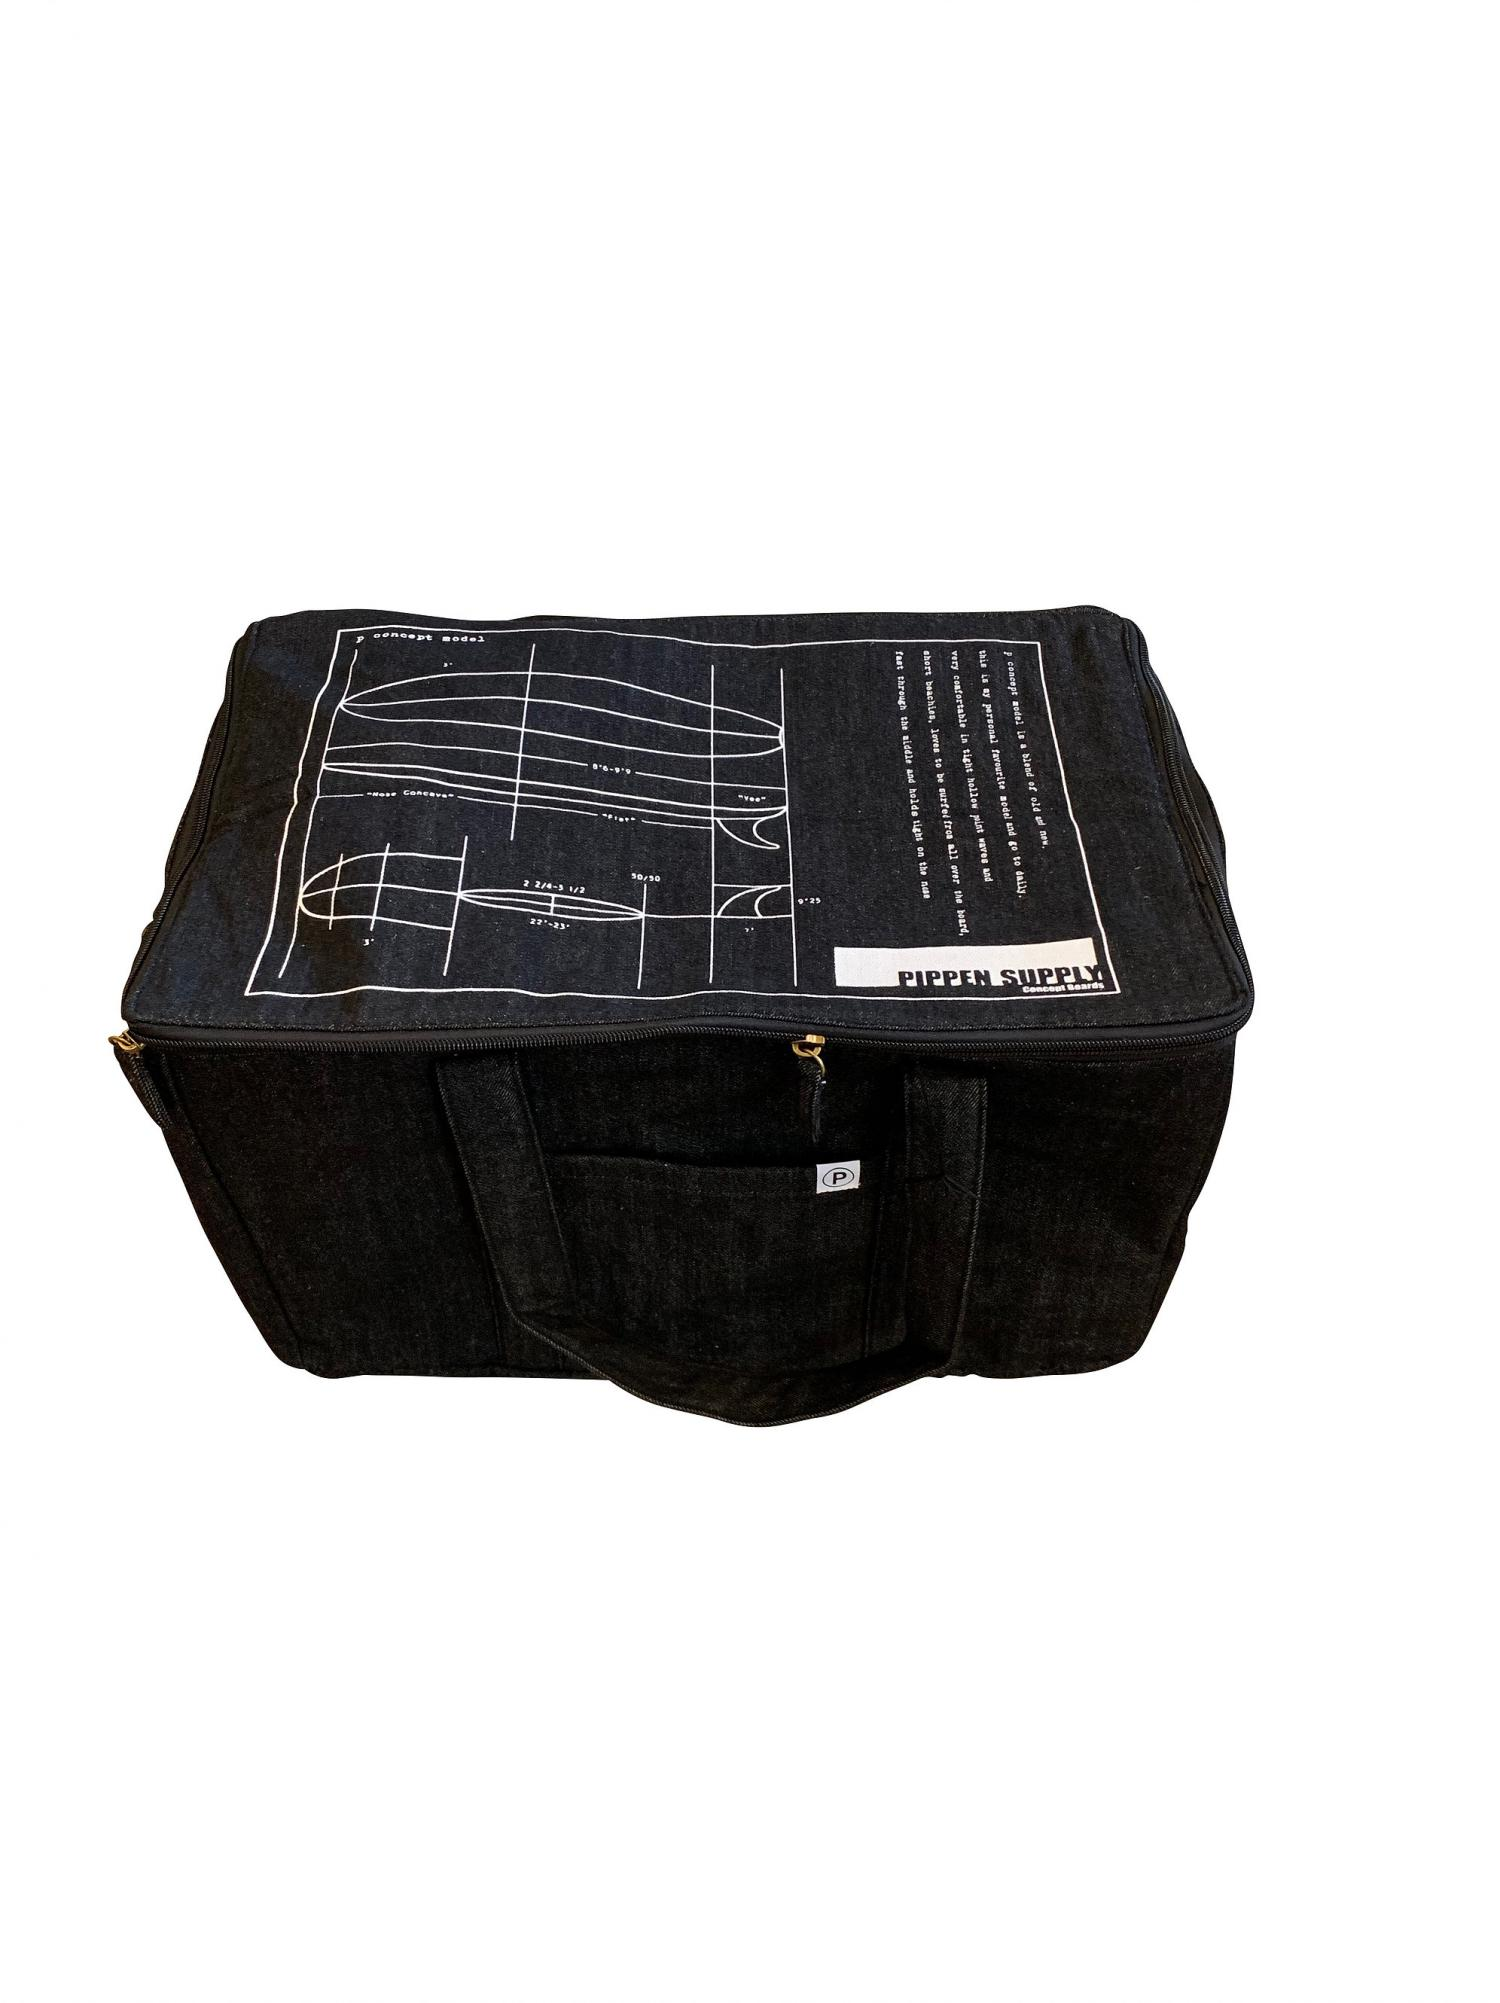 P SUPPLY. Plastic tank case and cold storage carry case